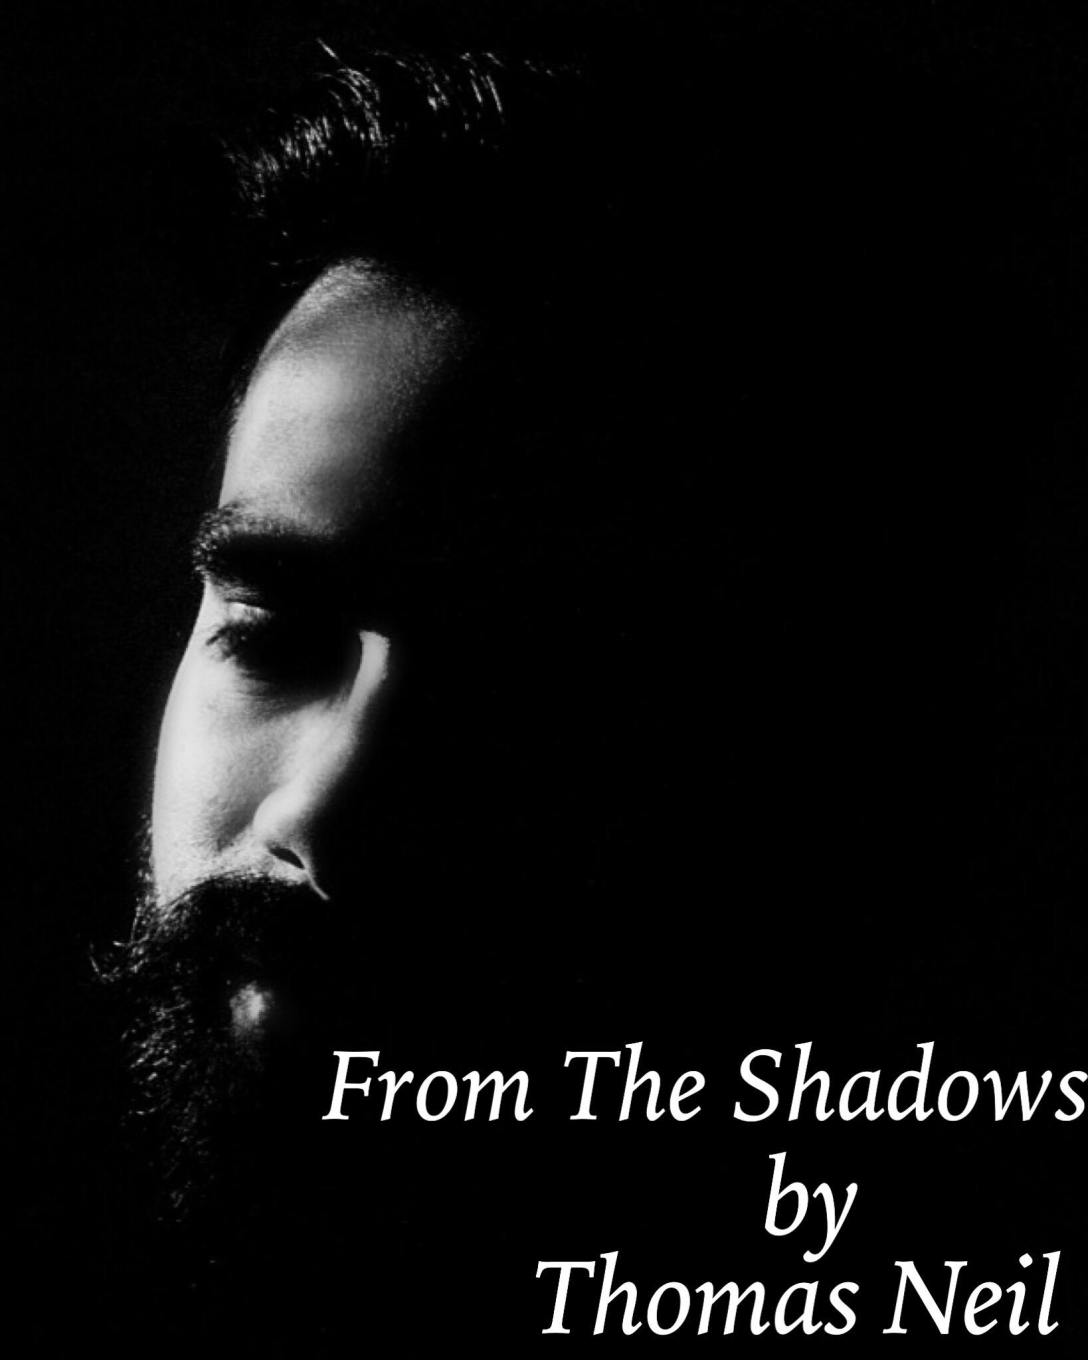 From the Shadows by Thomas Neil